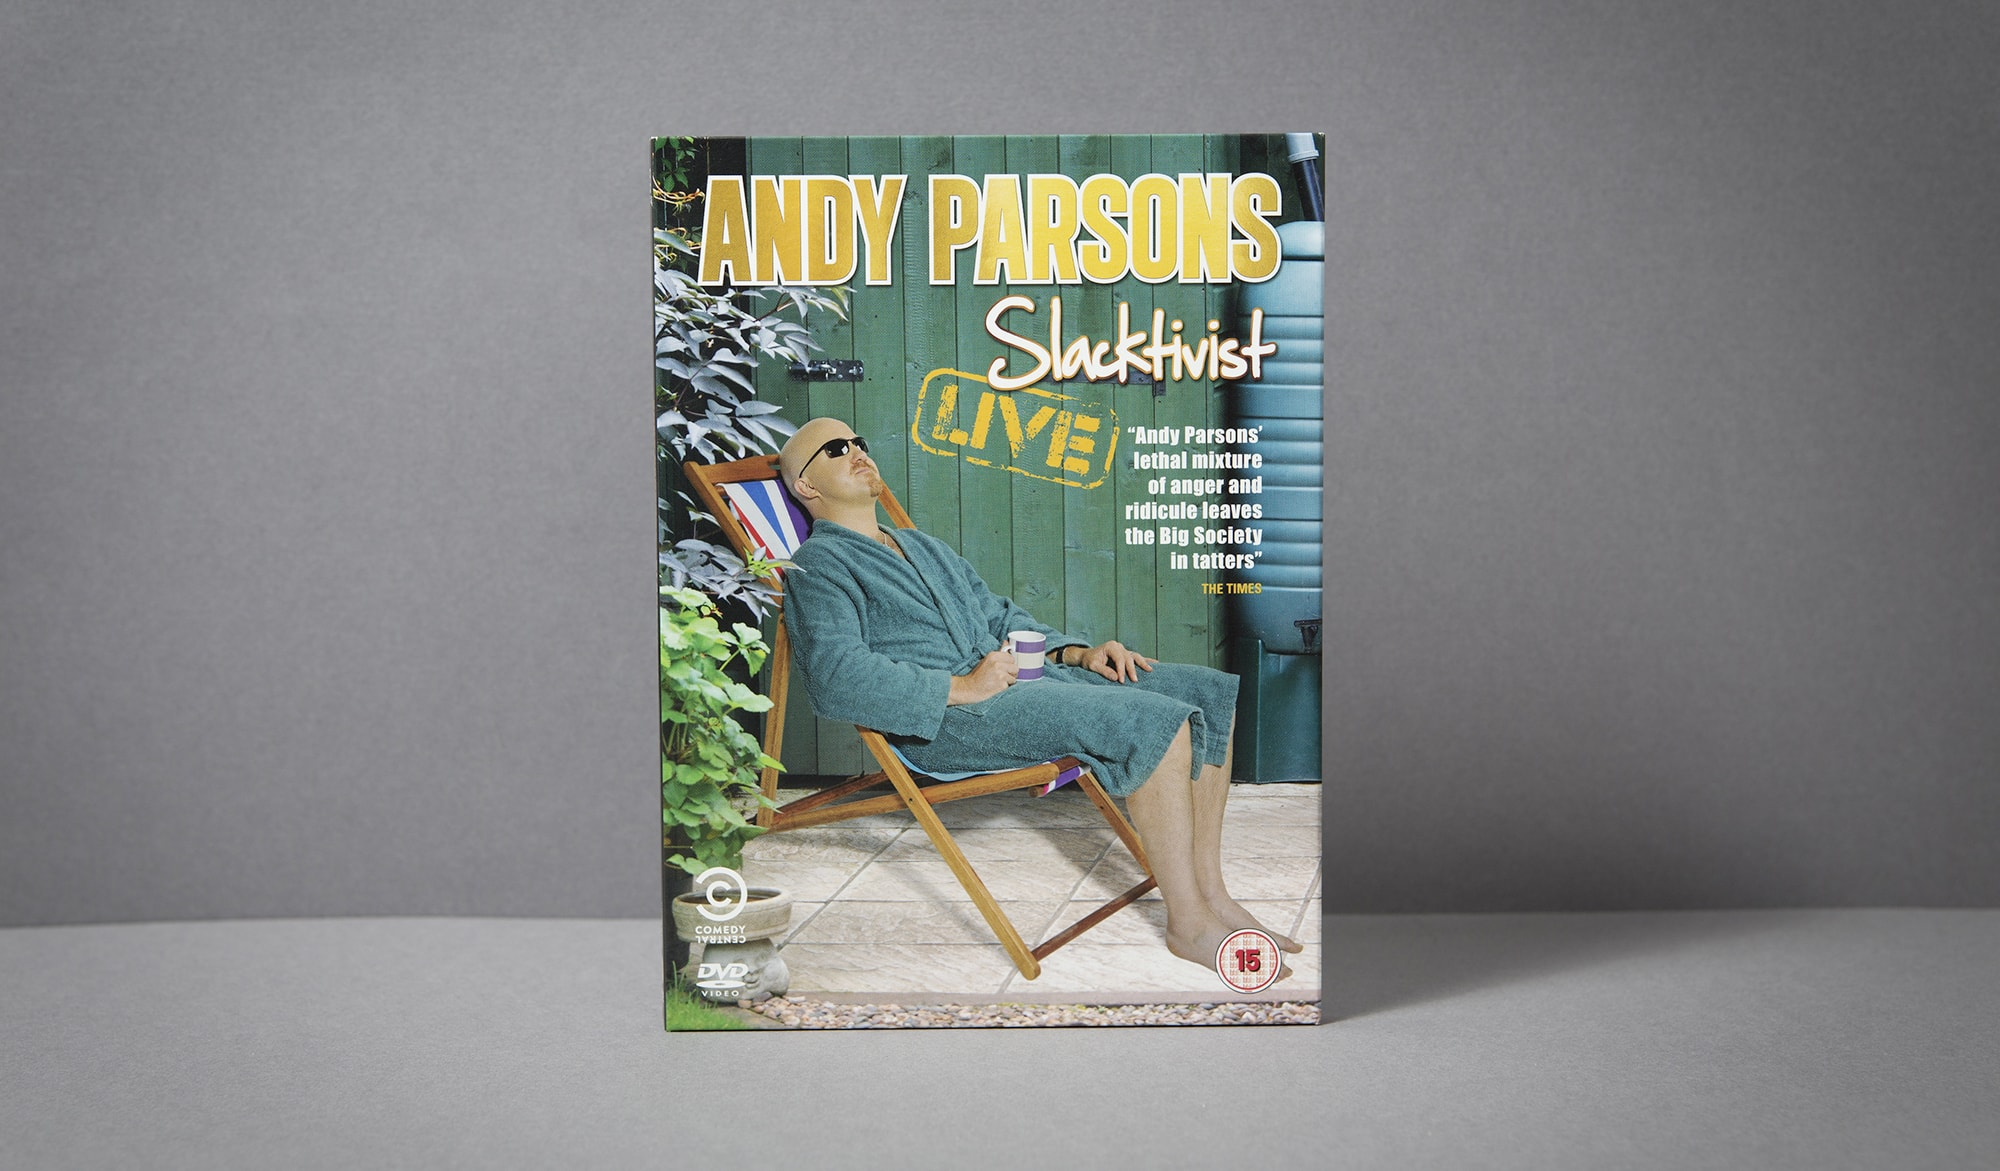 Andy Parsons DVD - front